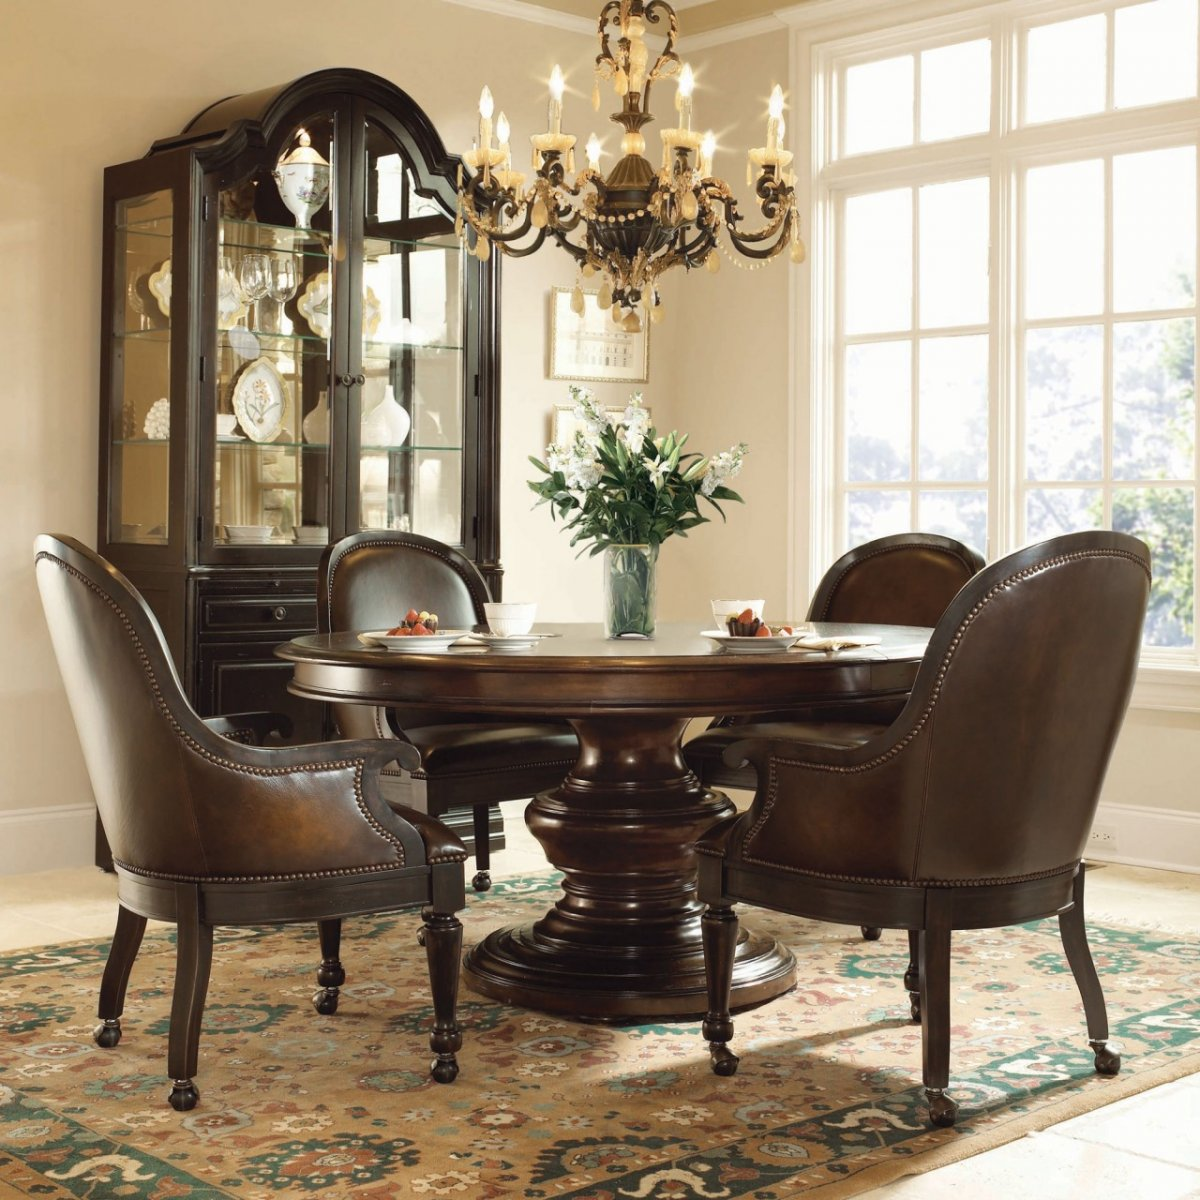 swivel dining room chairs. Inspirational Swivel Dining Chairs With Casters 44 Room I